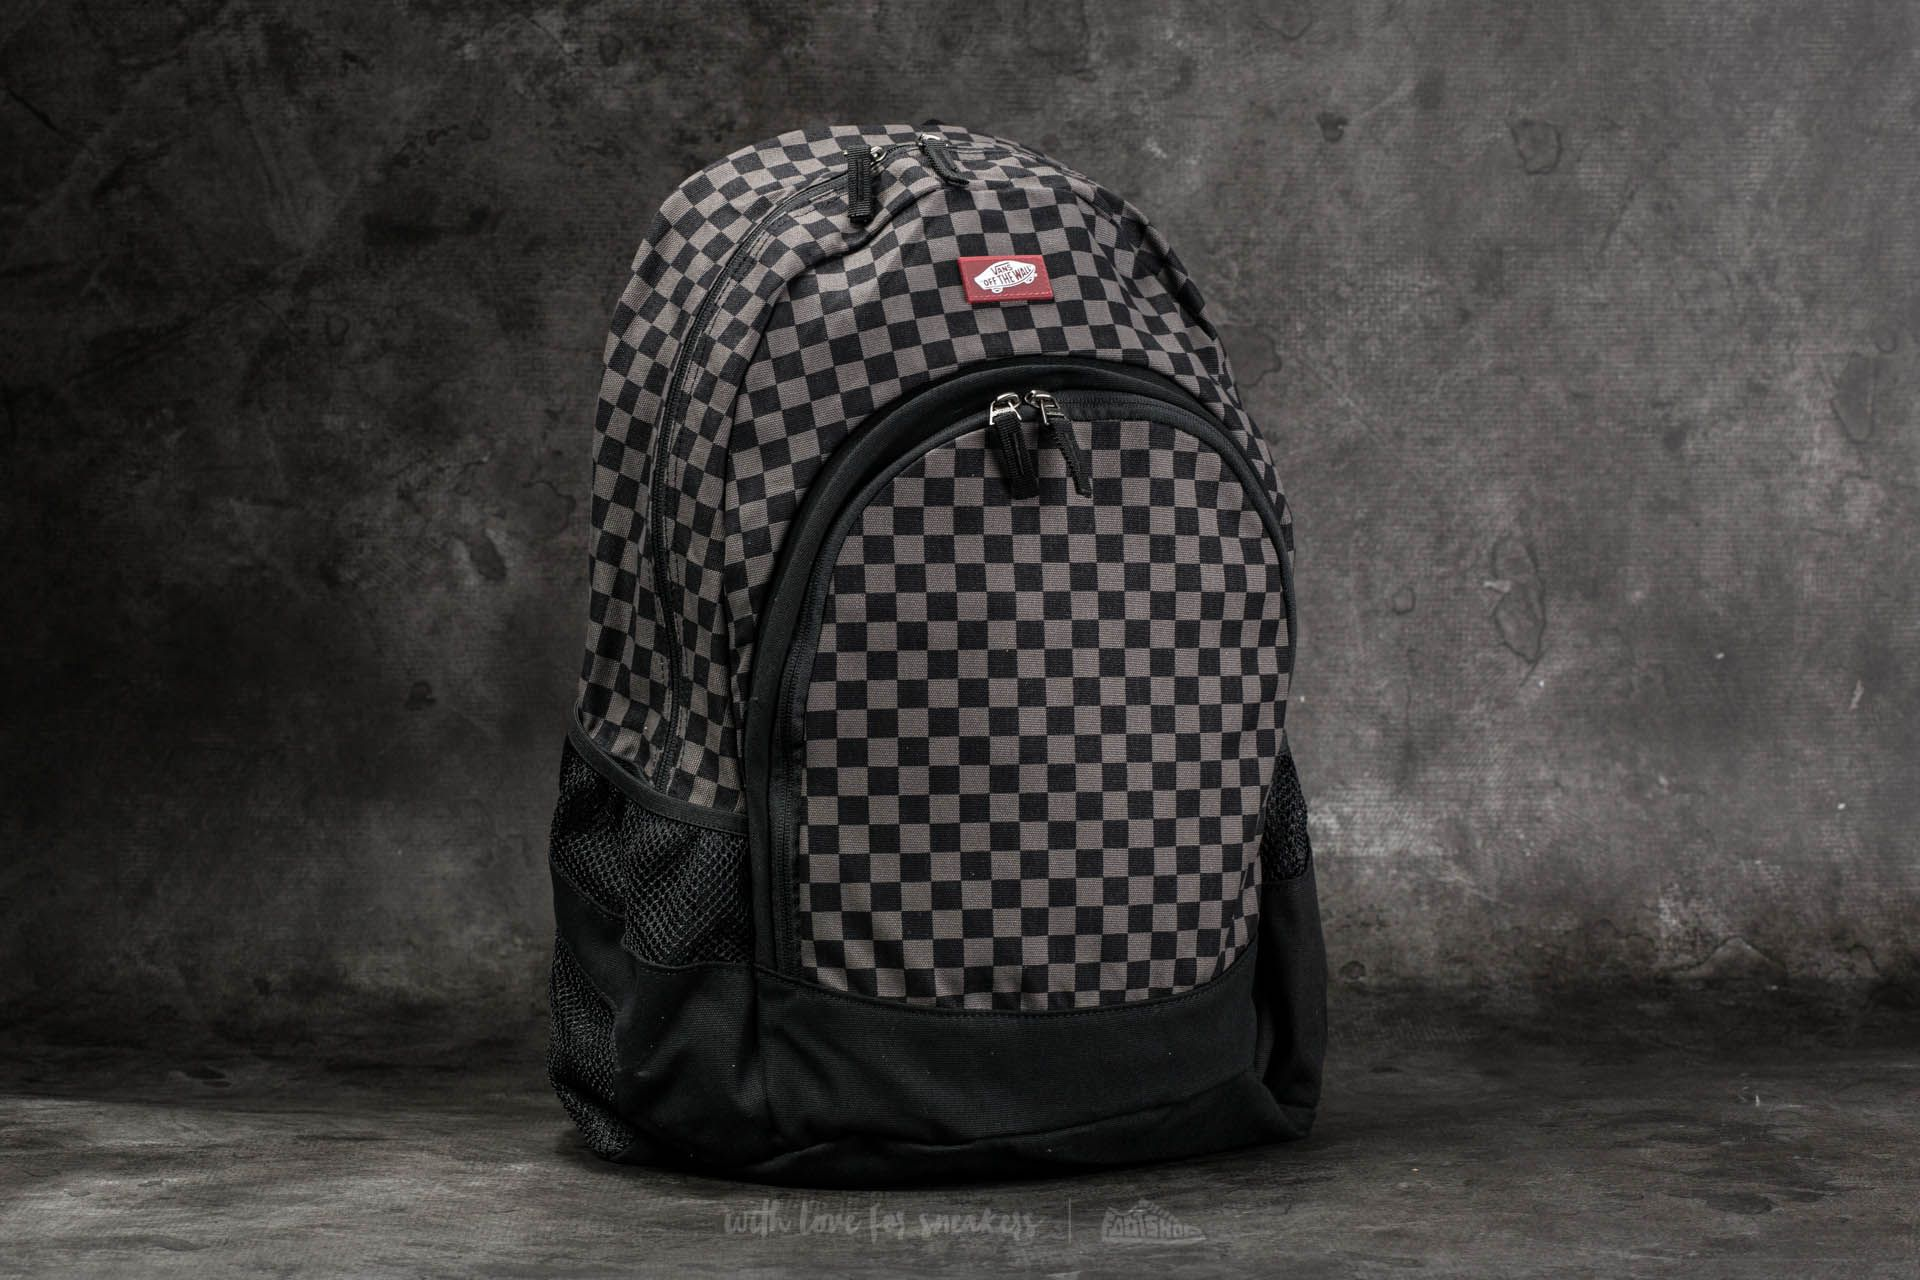 d7c6892d2a Vans VAN DOREN BACKPACK Black/Charcoal | Footshop